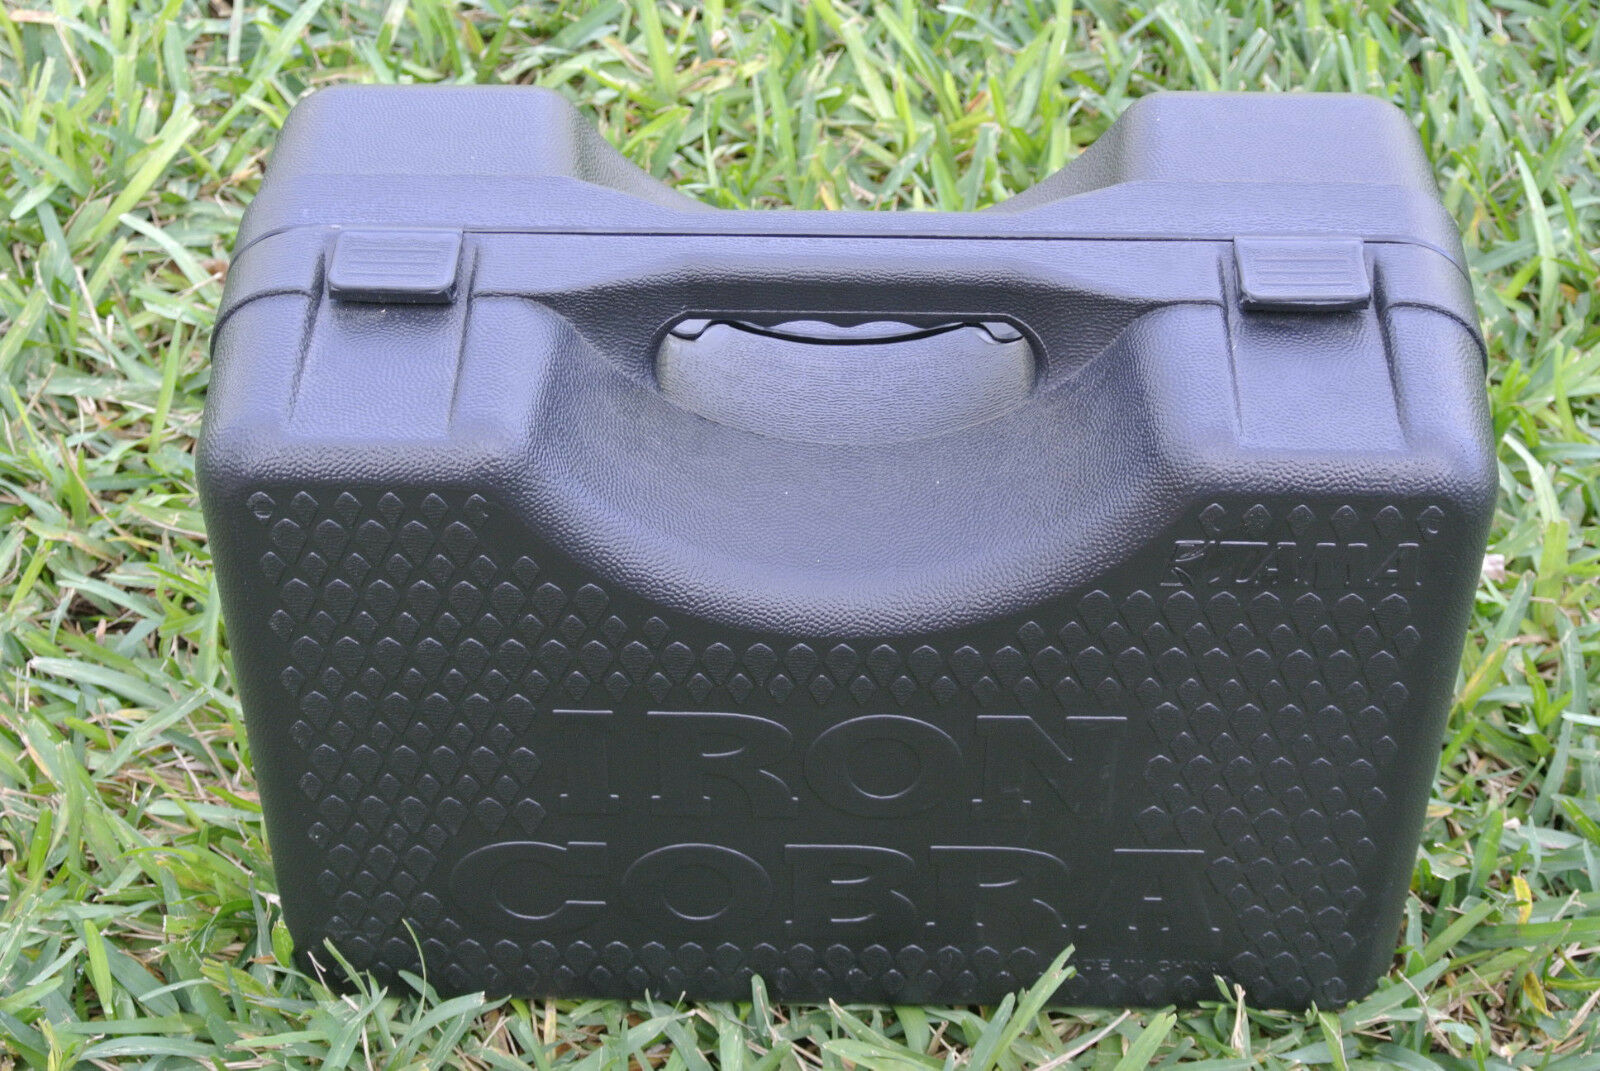 FACTORY CASE for YOUR TAMA IRON COBRA 900 SERIES BASS PEDAL and DRUM SET   D744